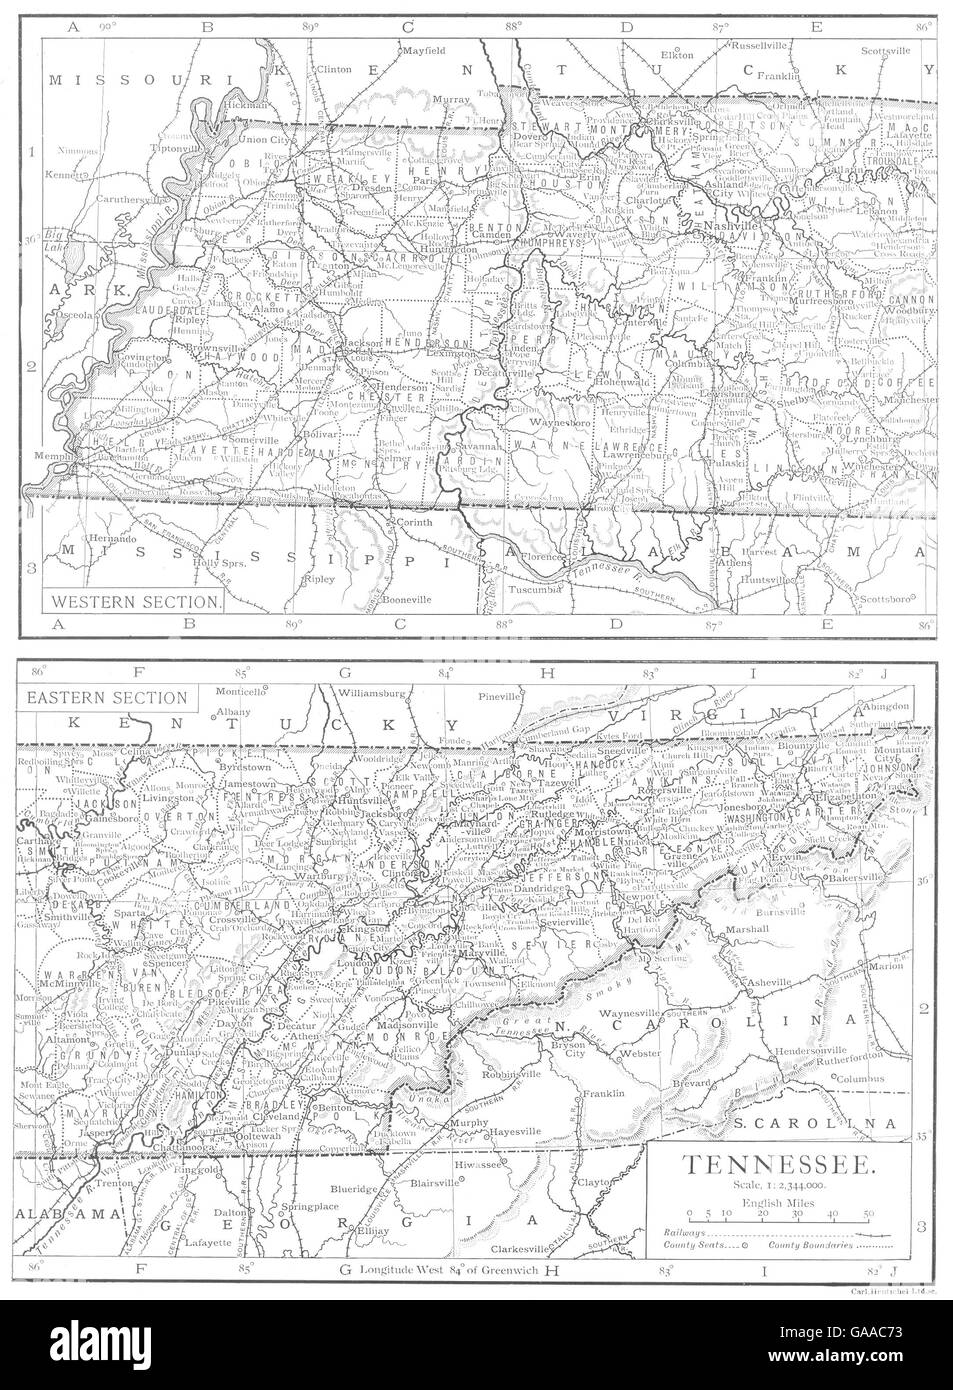 Tn State Map With Counties.Tennessee Tennessee State Map Showing Counties 1910 Stock Photo